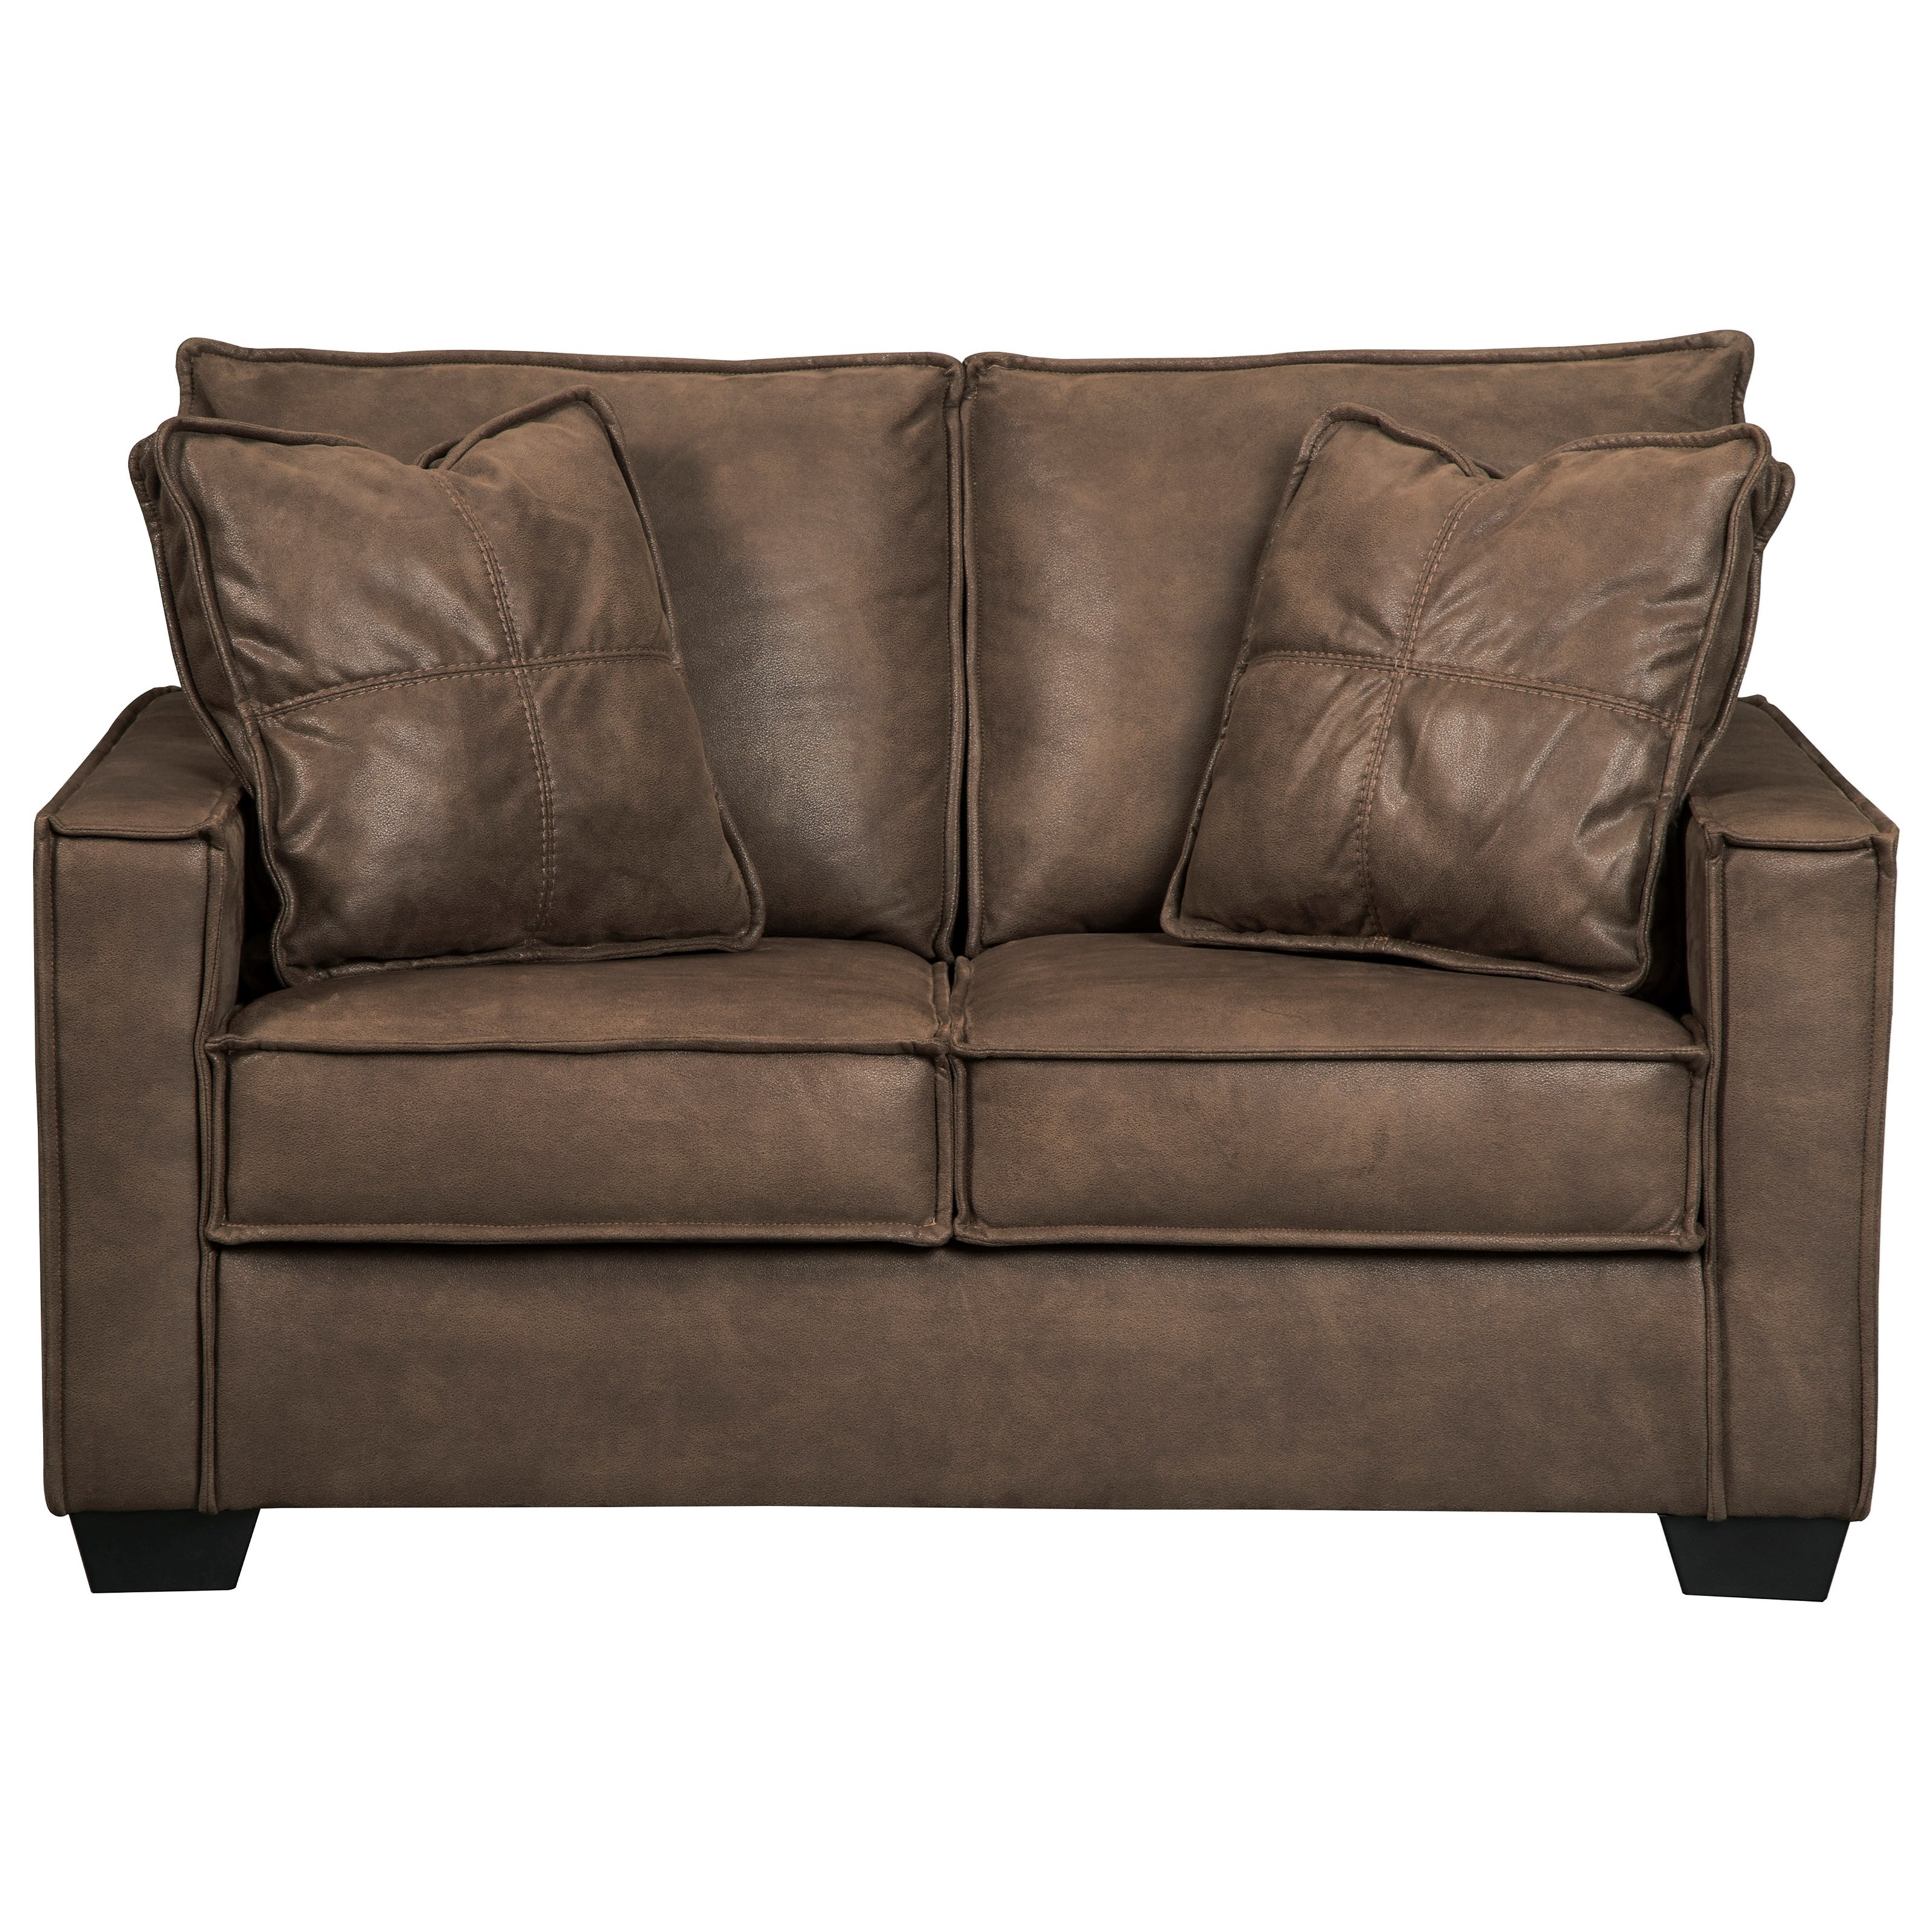 Surprising Faux Leather Loveseat With Piecrust Welt Trim By Signature Short Links Chair Design For Home Short Linksinfo